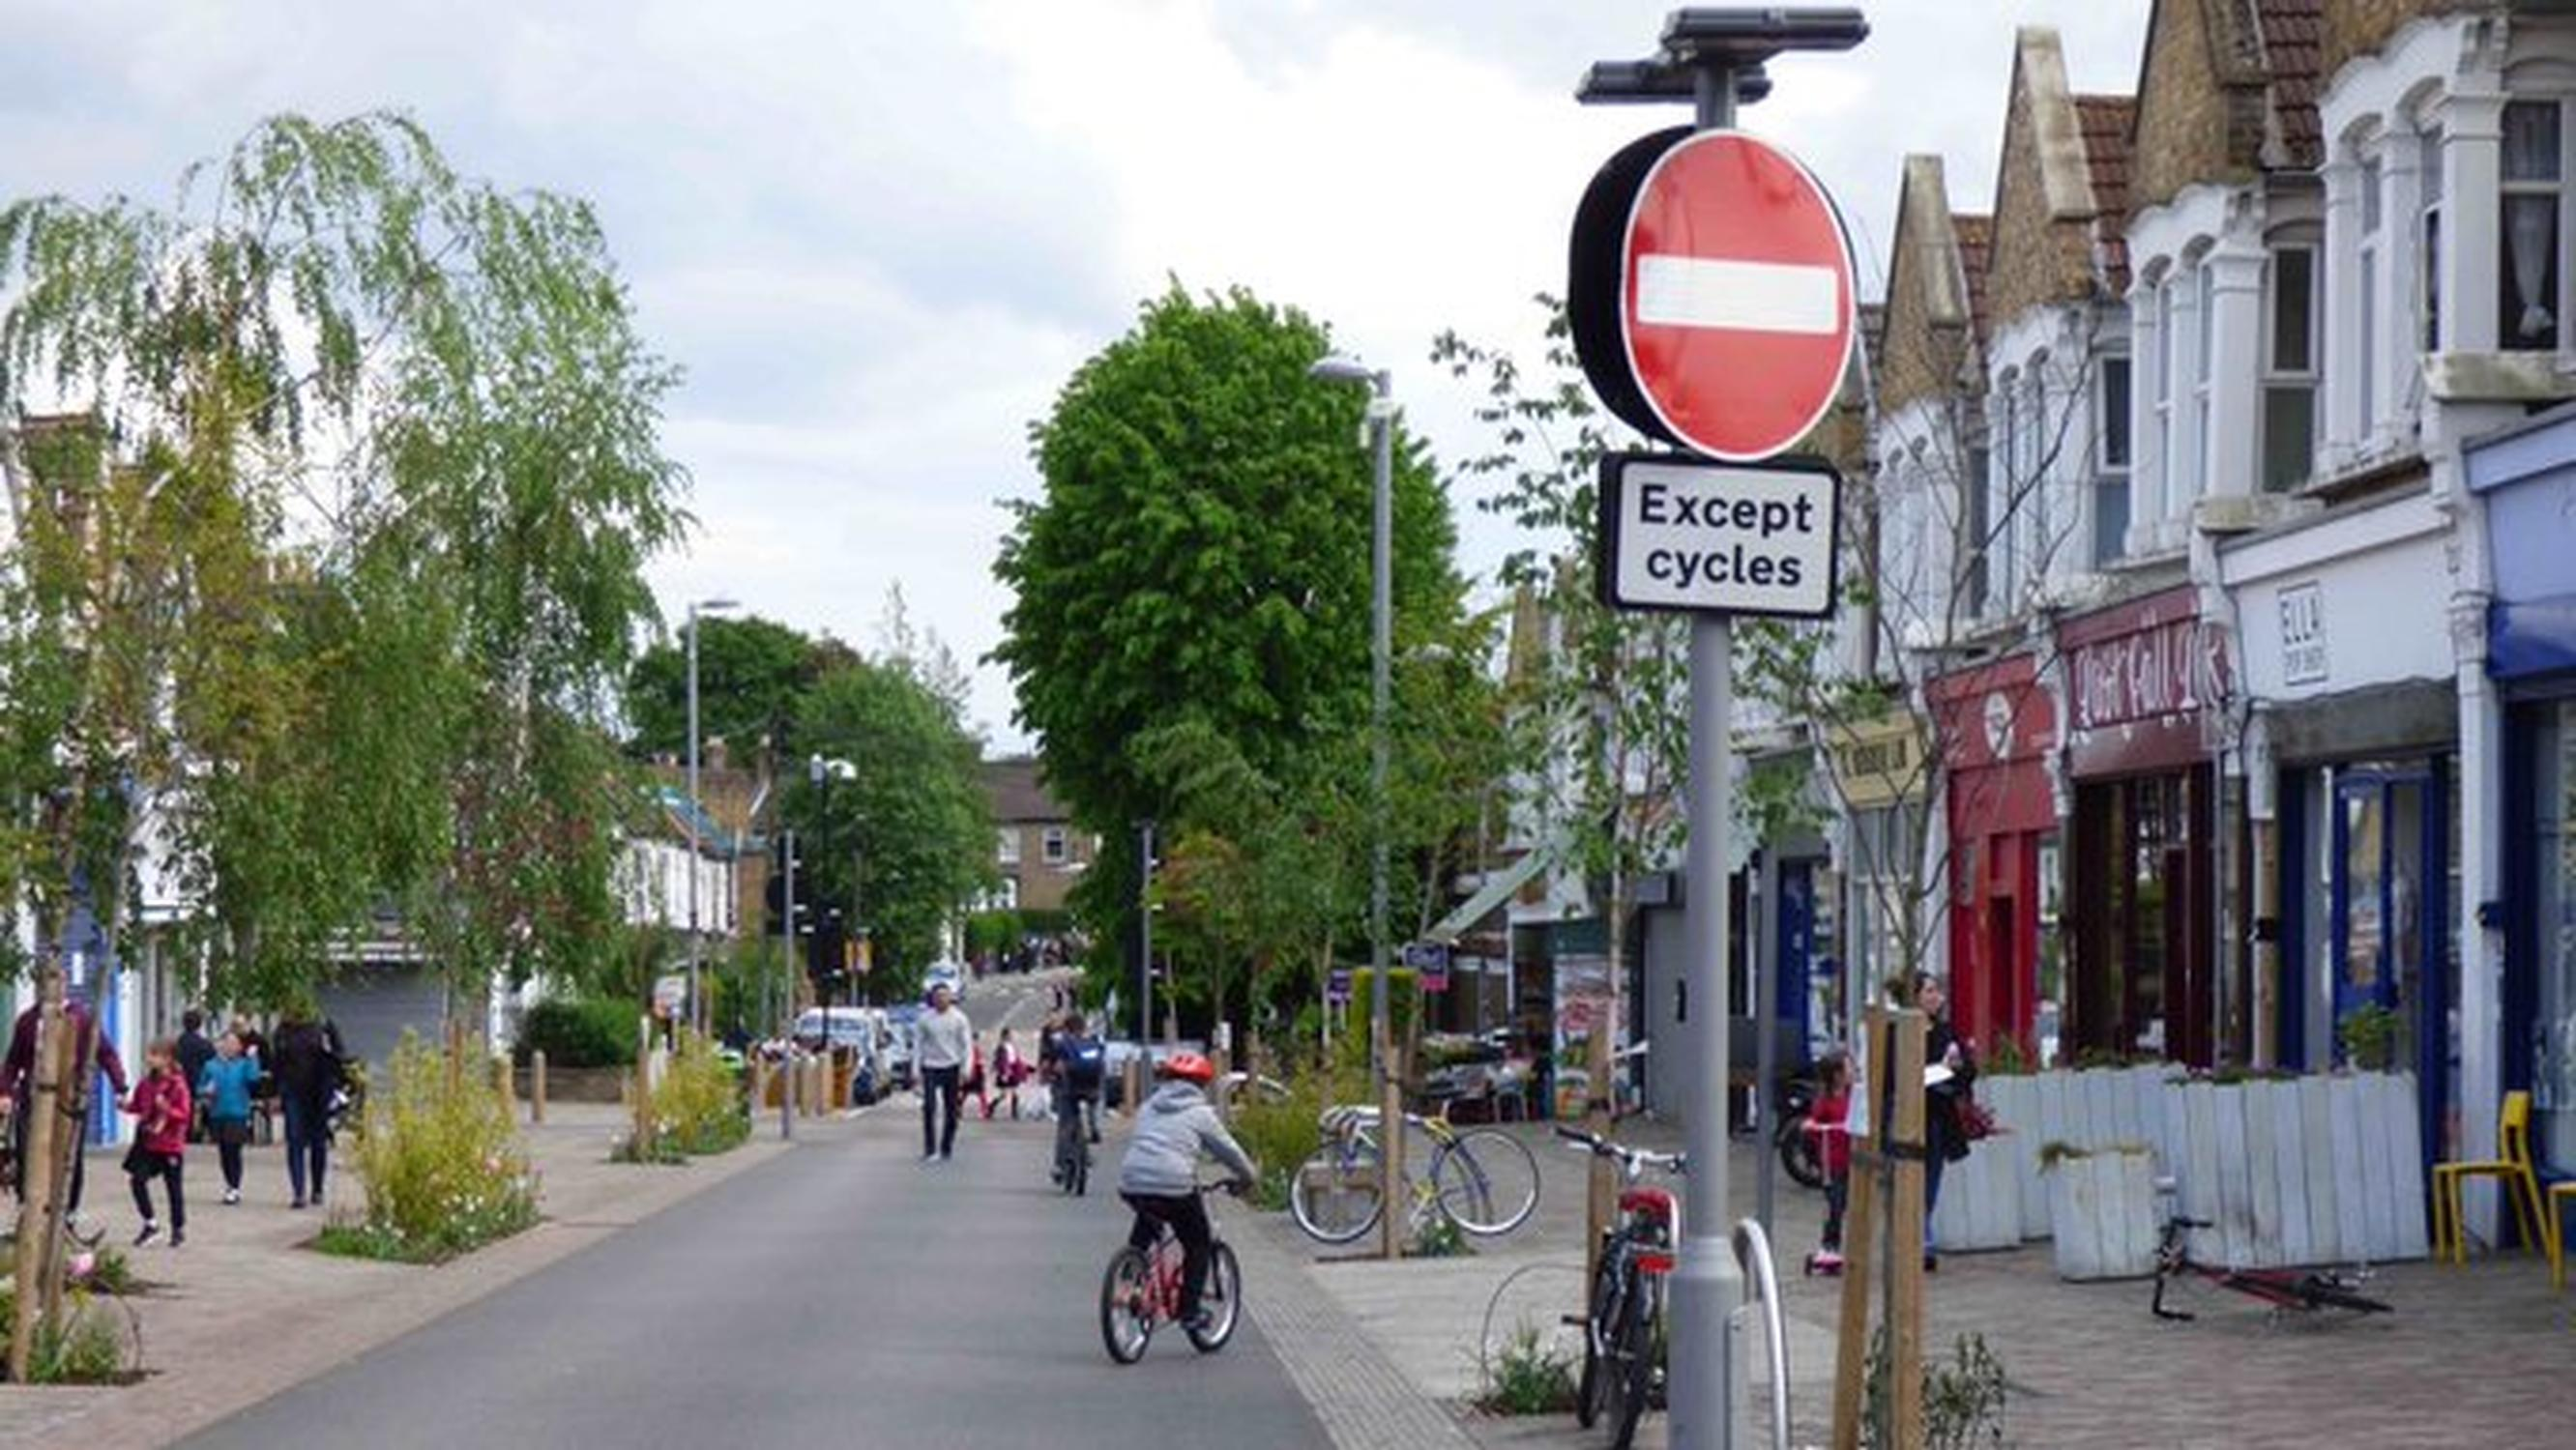 Waltham Forest has championed the cycling and walking friendly `Mini-Holland` concept